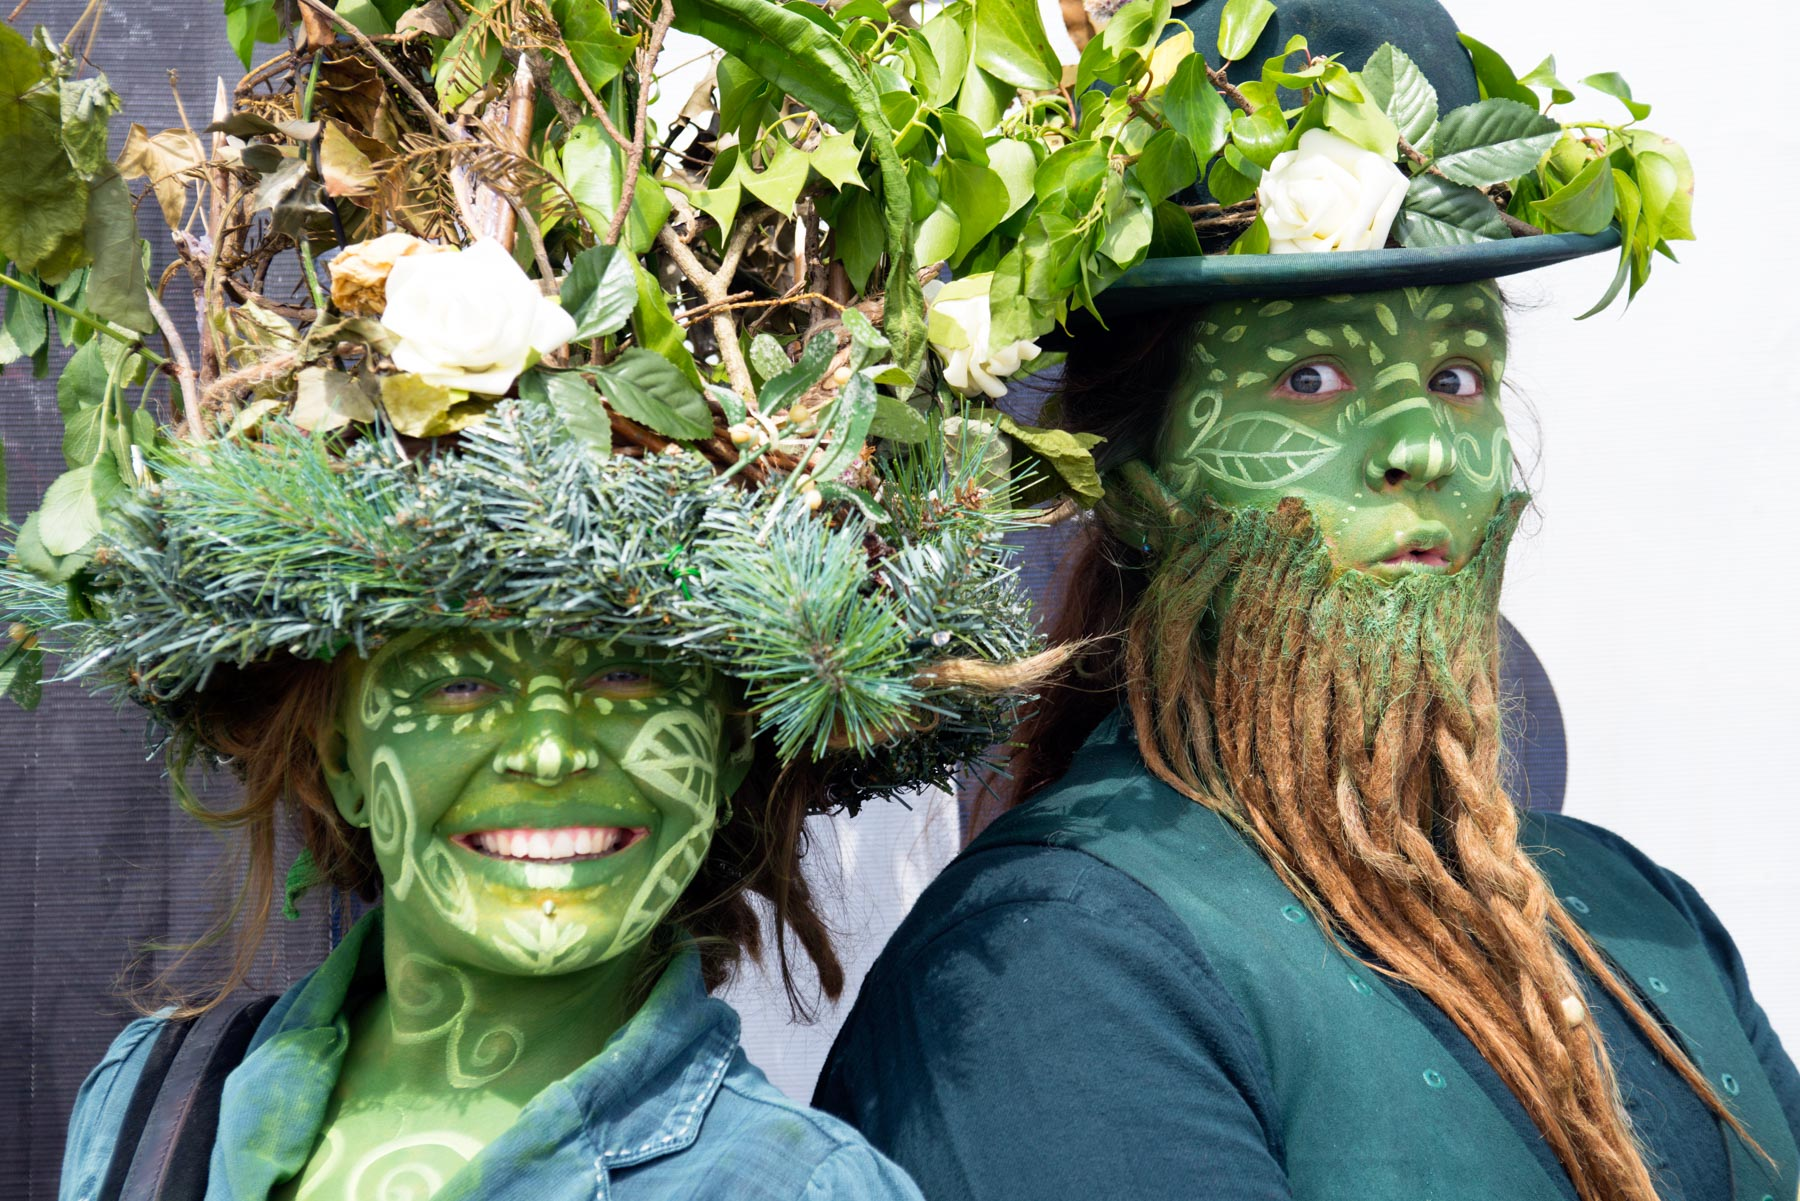 15. The Green Men from Porthleven at the Royal Cornwall Show copy.JPG